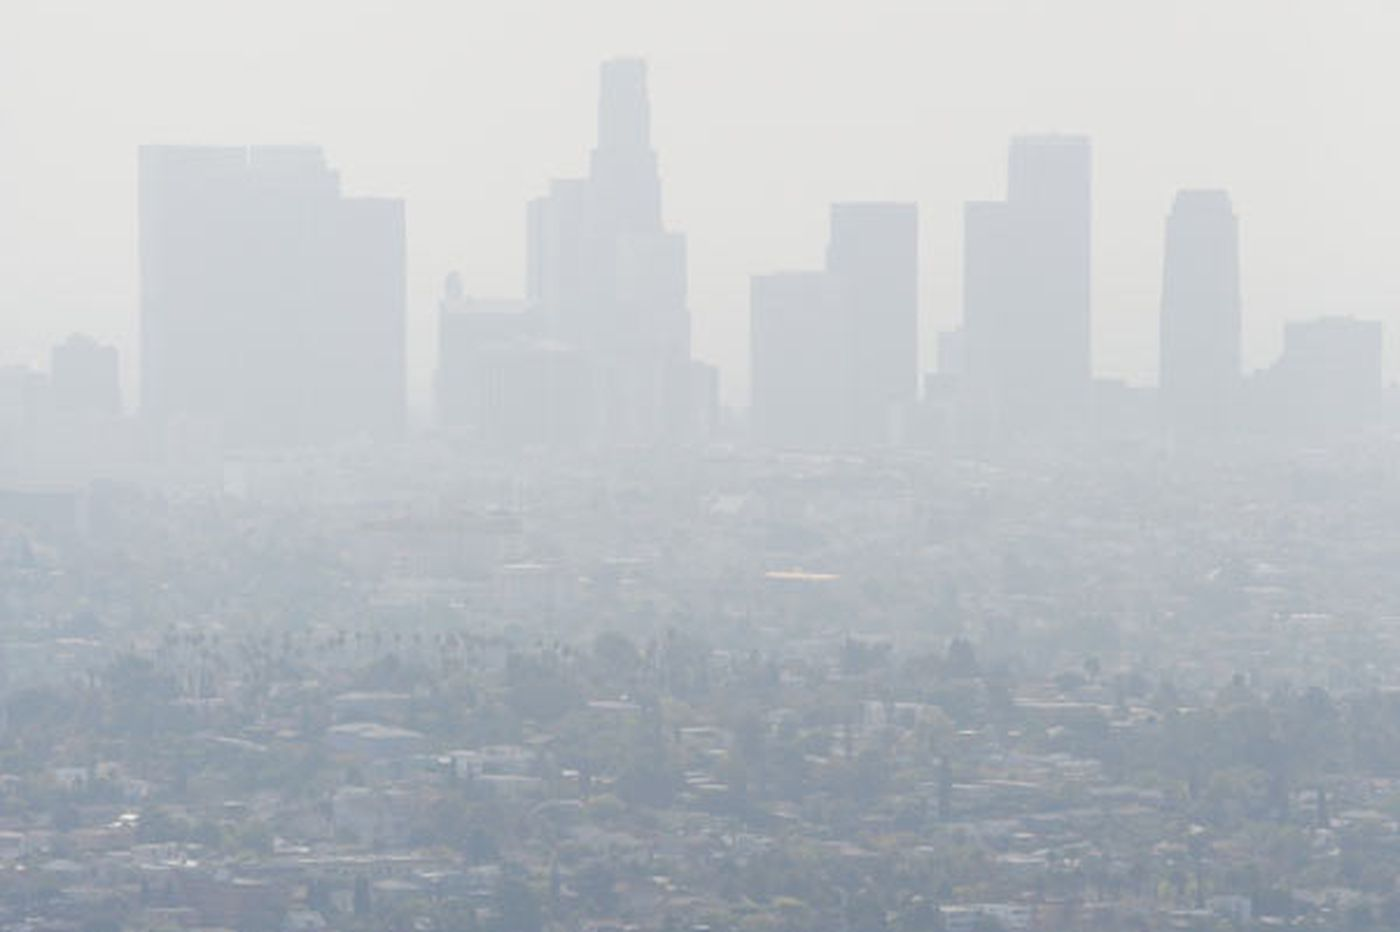 GreenSpace: If we clean up the air, kids' lungs will benefit